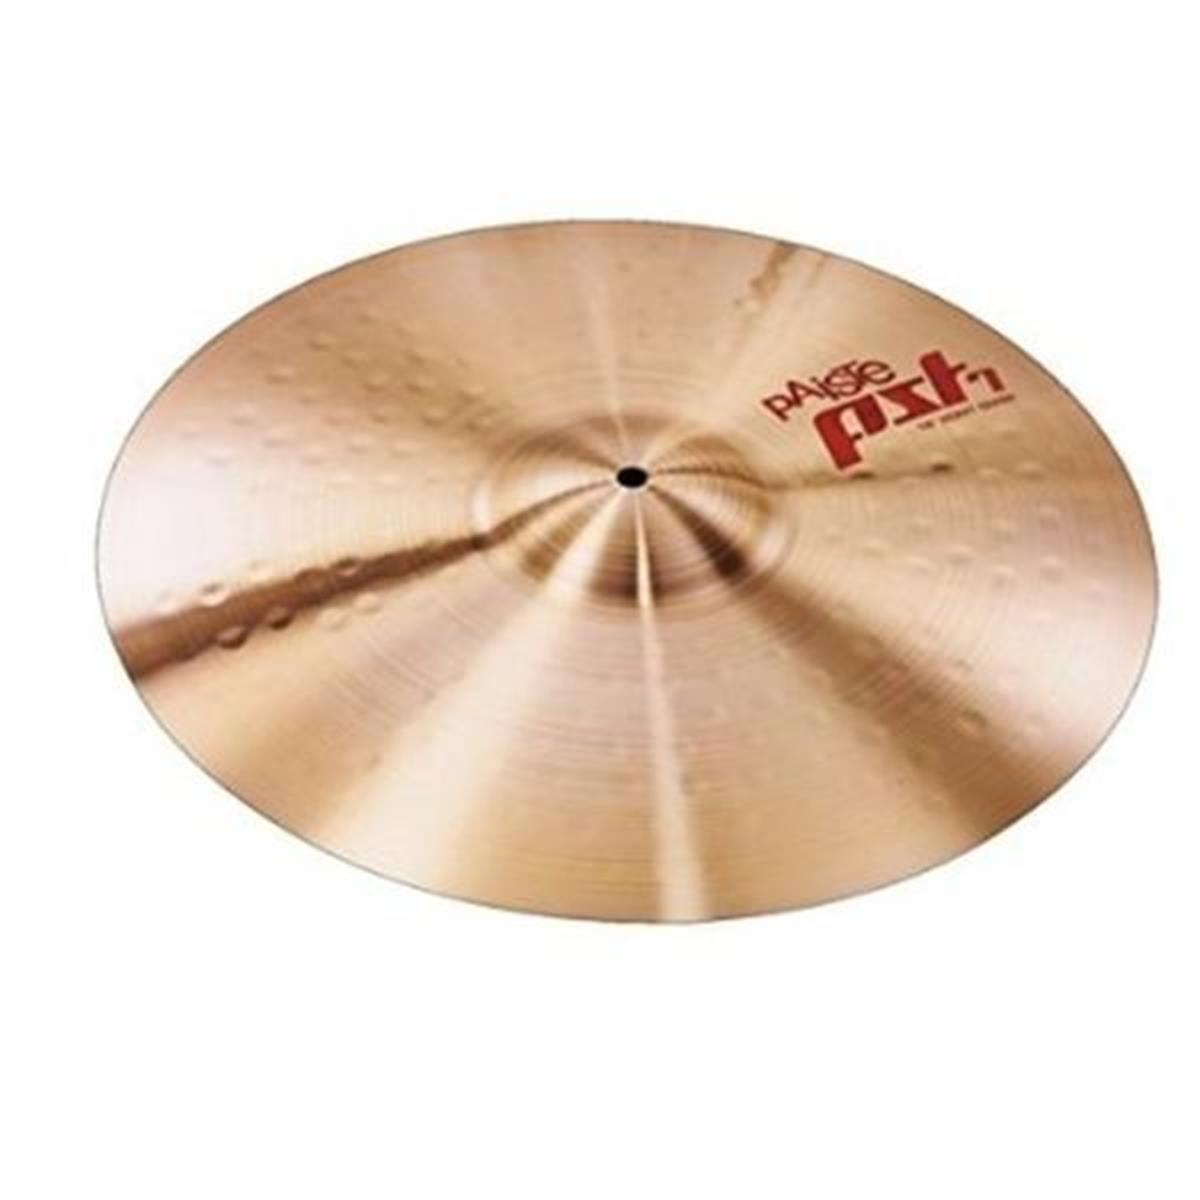 PAISTE PST7CTC19 - Paiste PST-7 Thin Crash 19